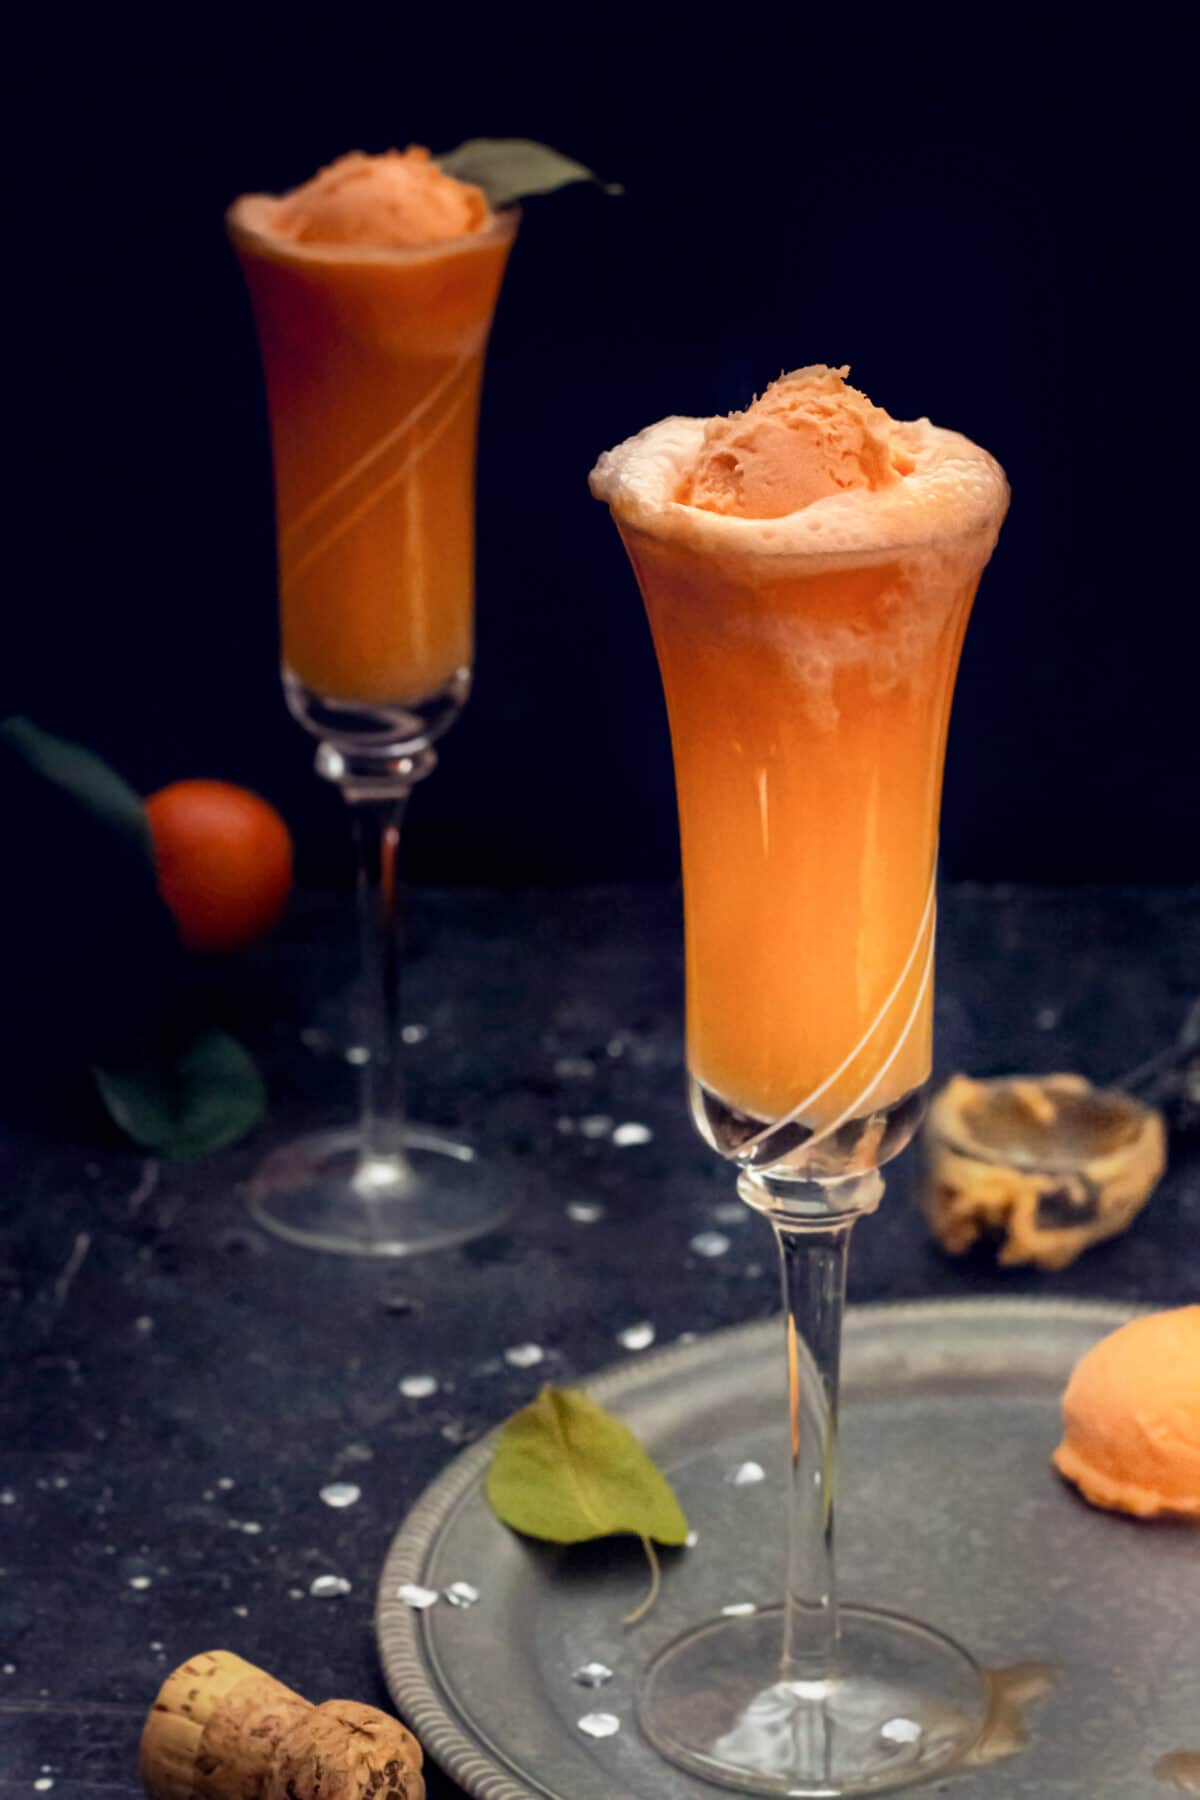 Two champagne glasses with orange sorbet mimosa drink.